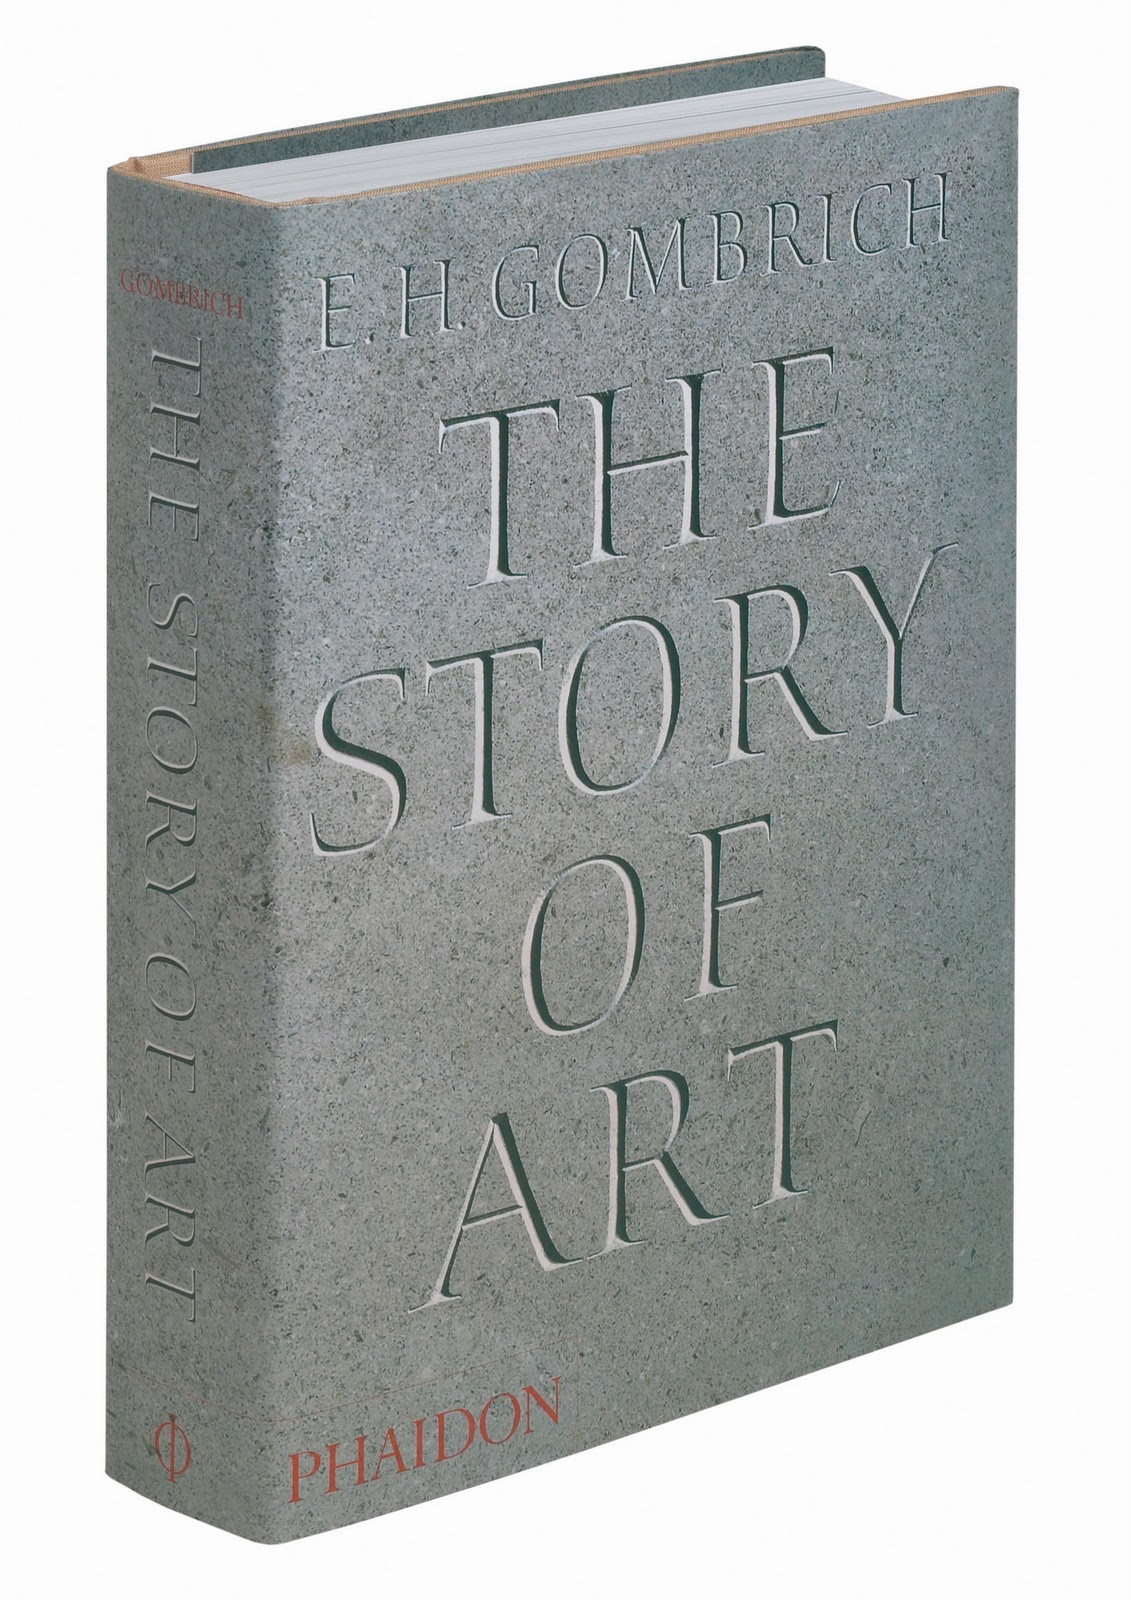 History Of Art Gombrich Pdf